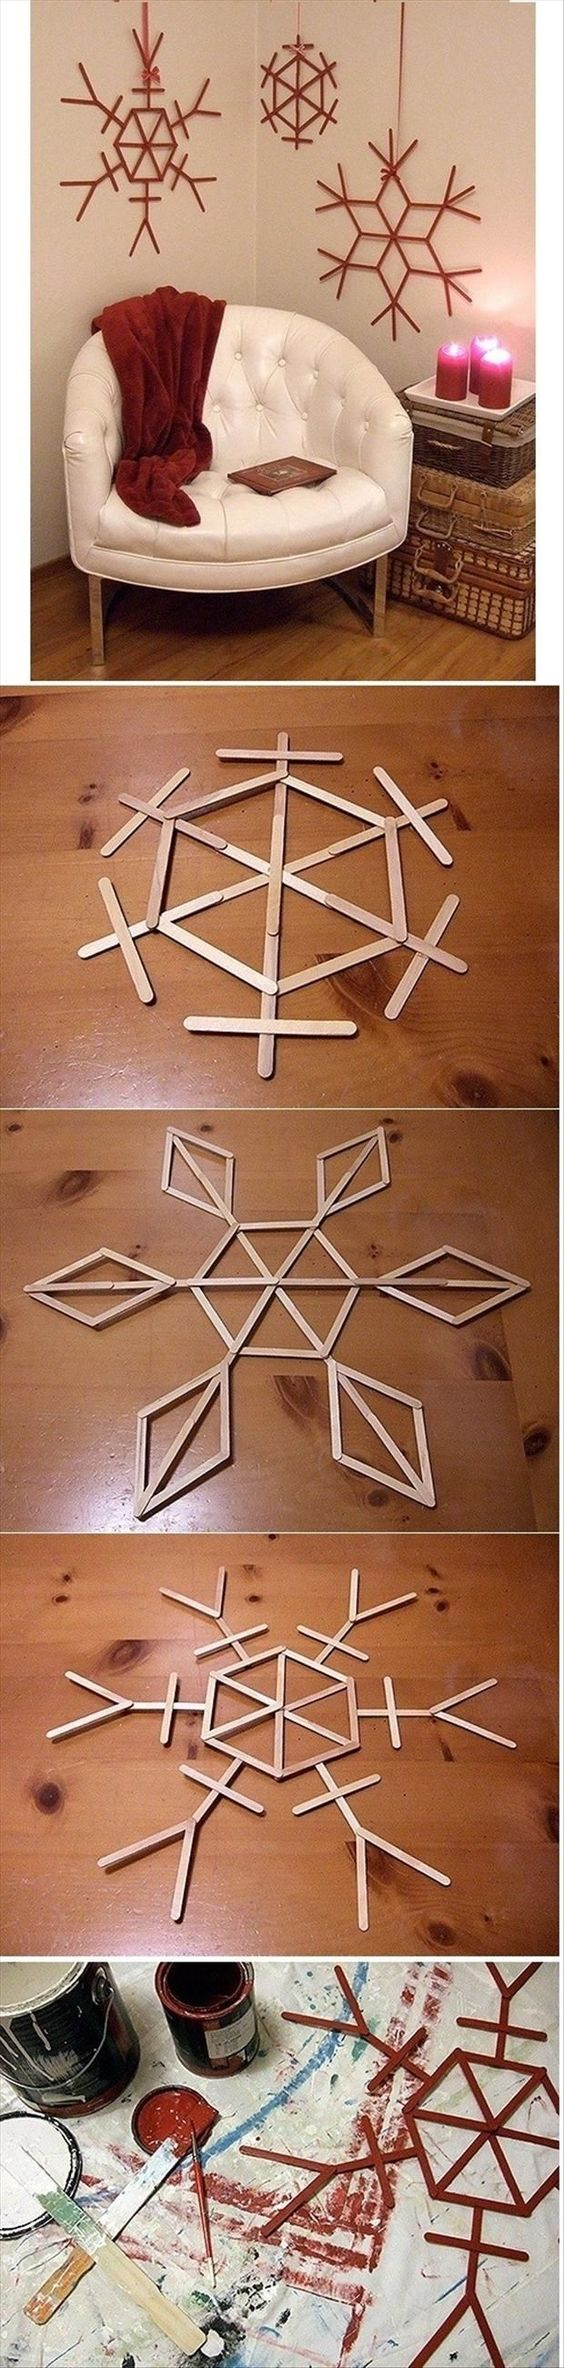 4 DIY Ideas and Tutorials to Recycle Popsicle Sticks for Christmas